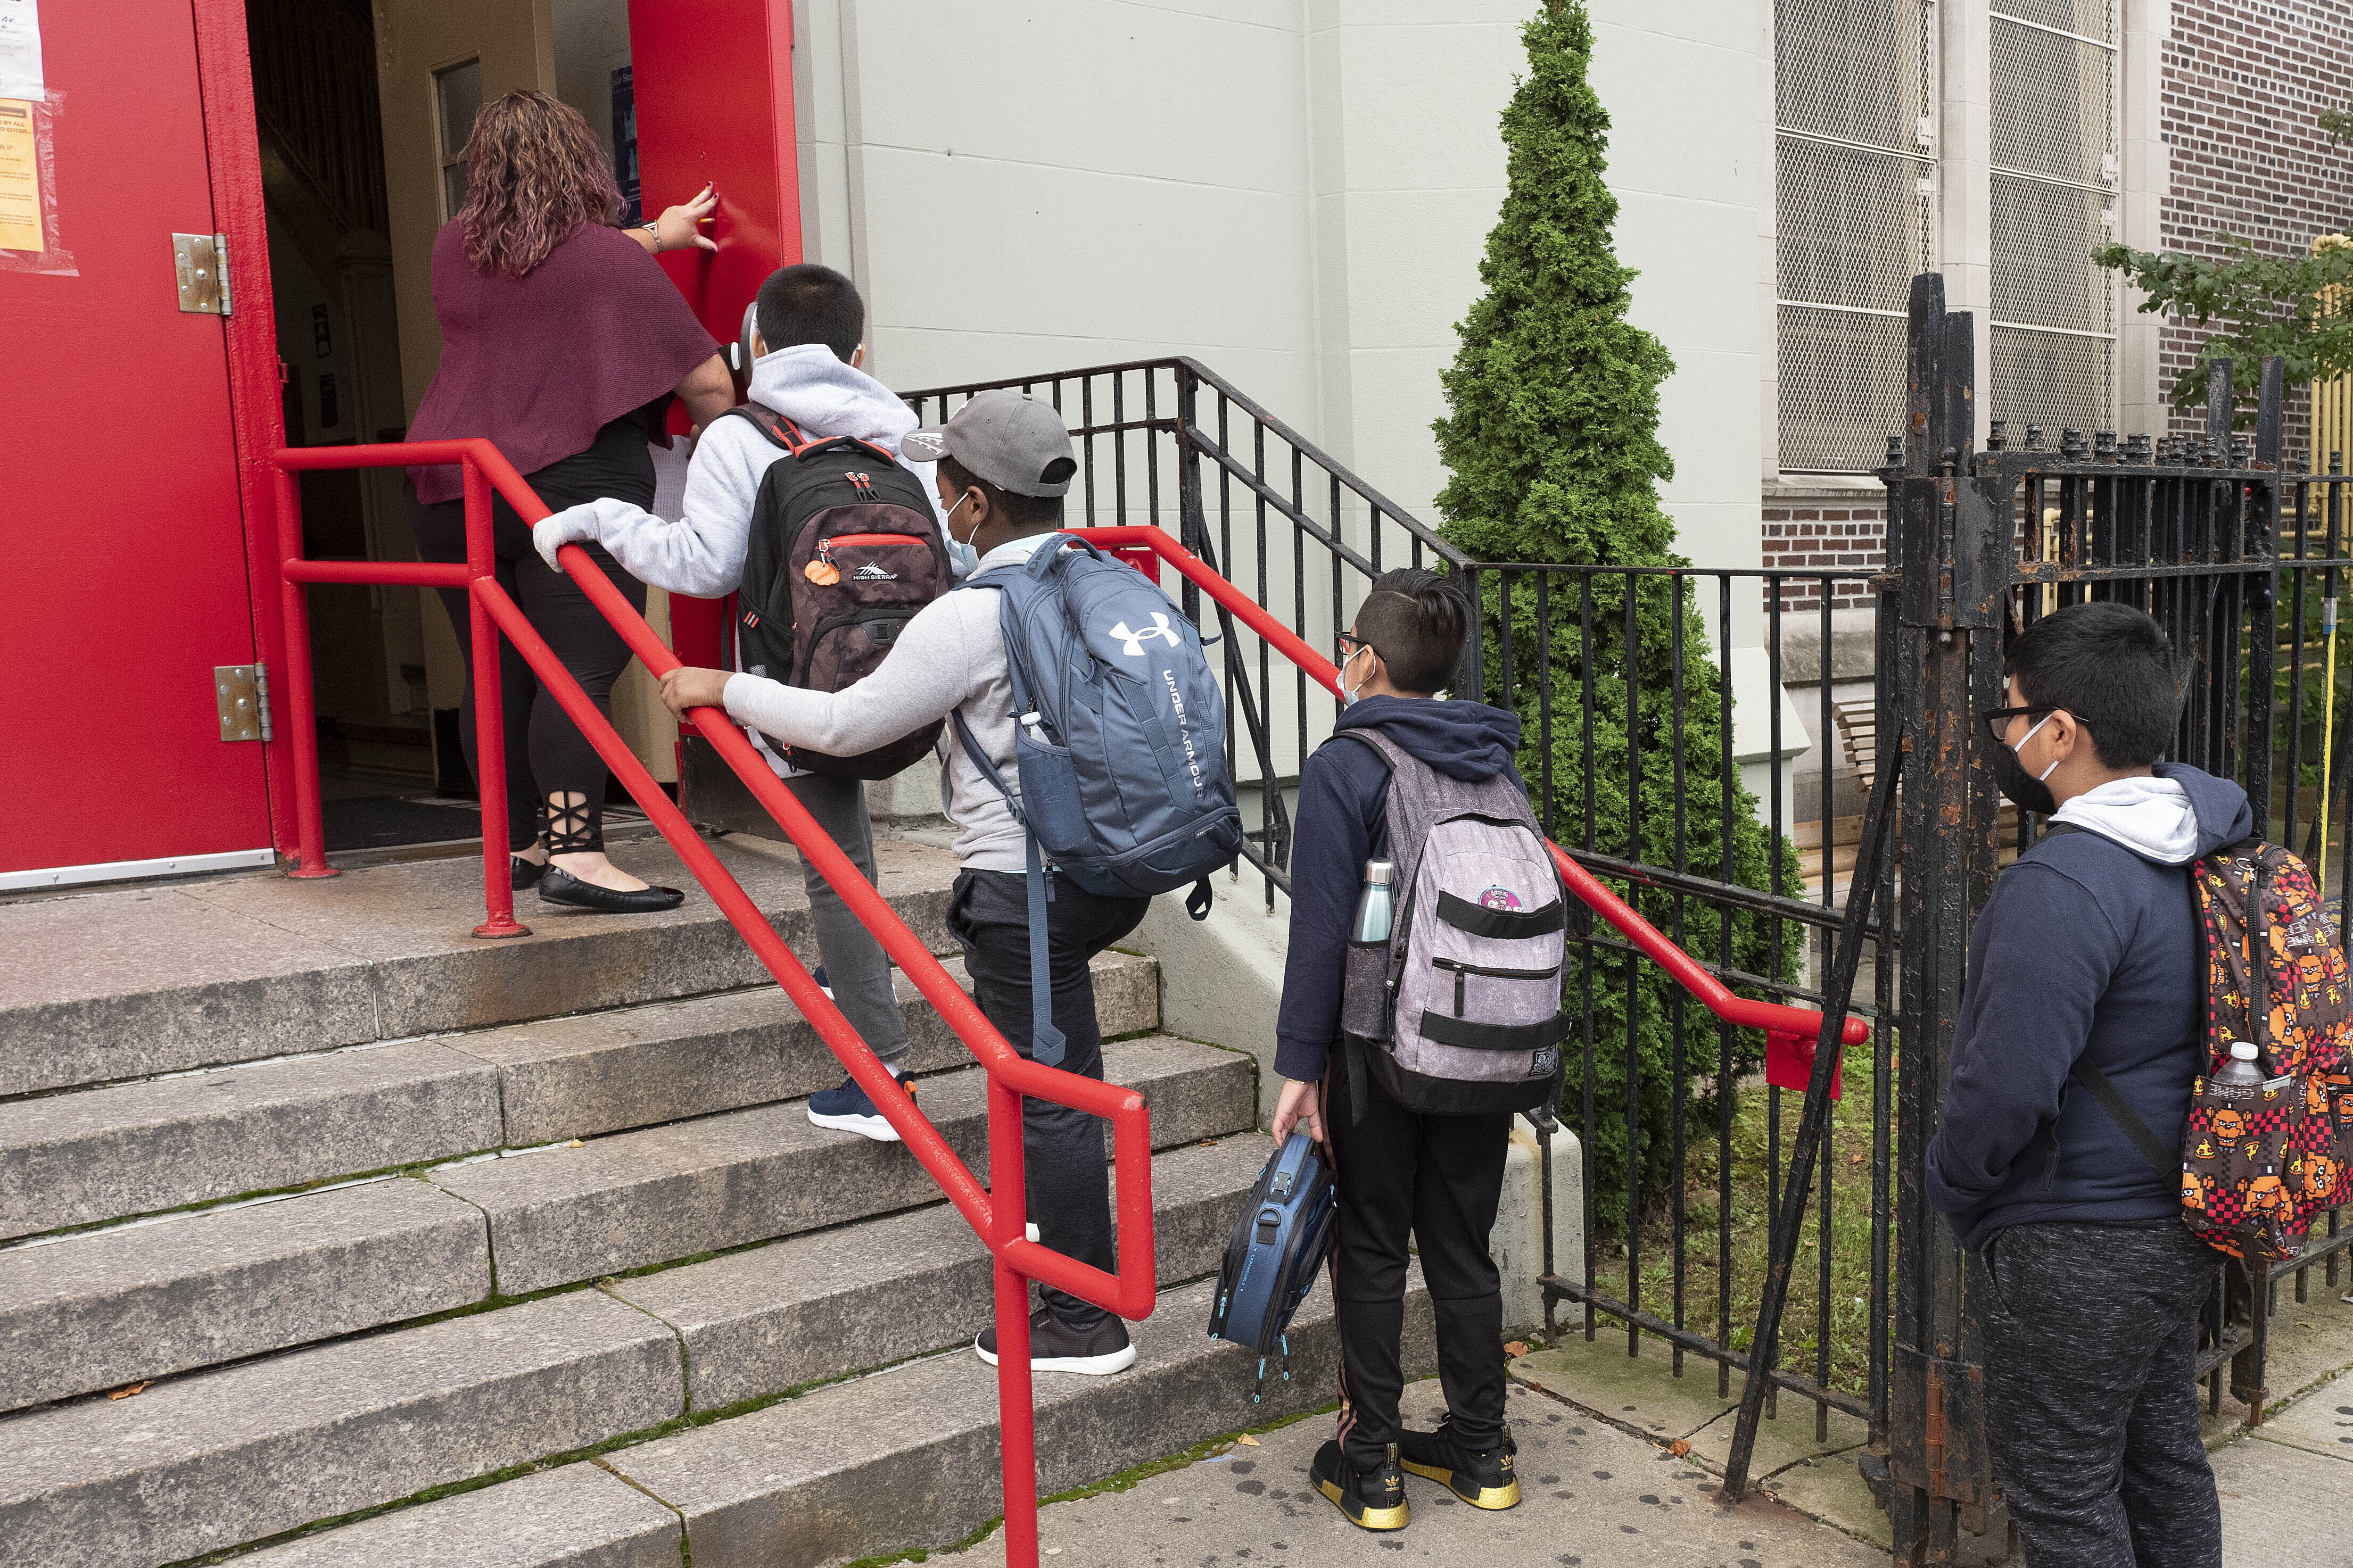 A teacher leads her students into an elementary school in the Brooklyn borough of New York on Tuesday, Sept. 29, 2020